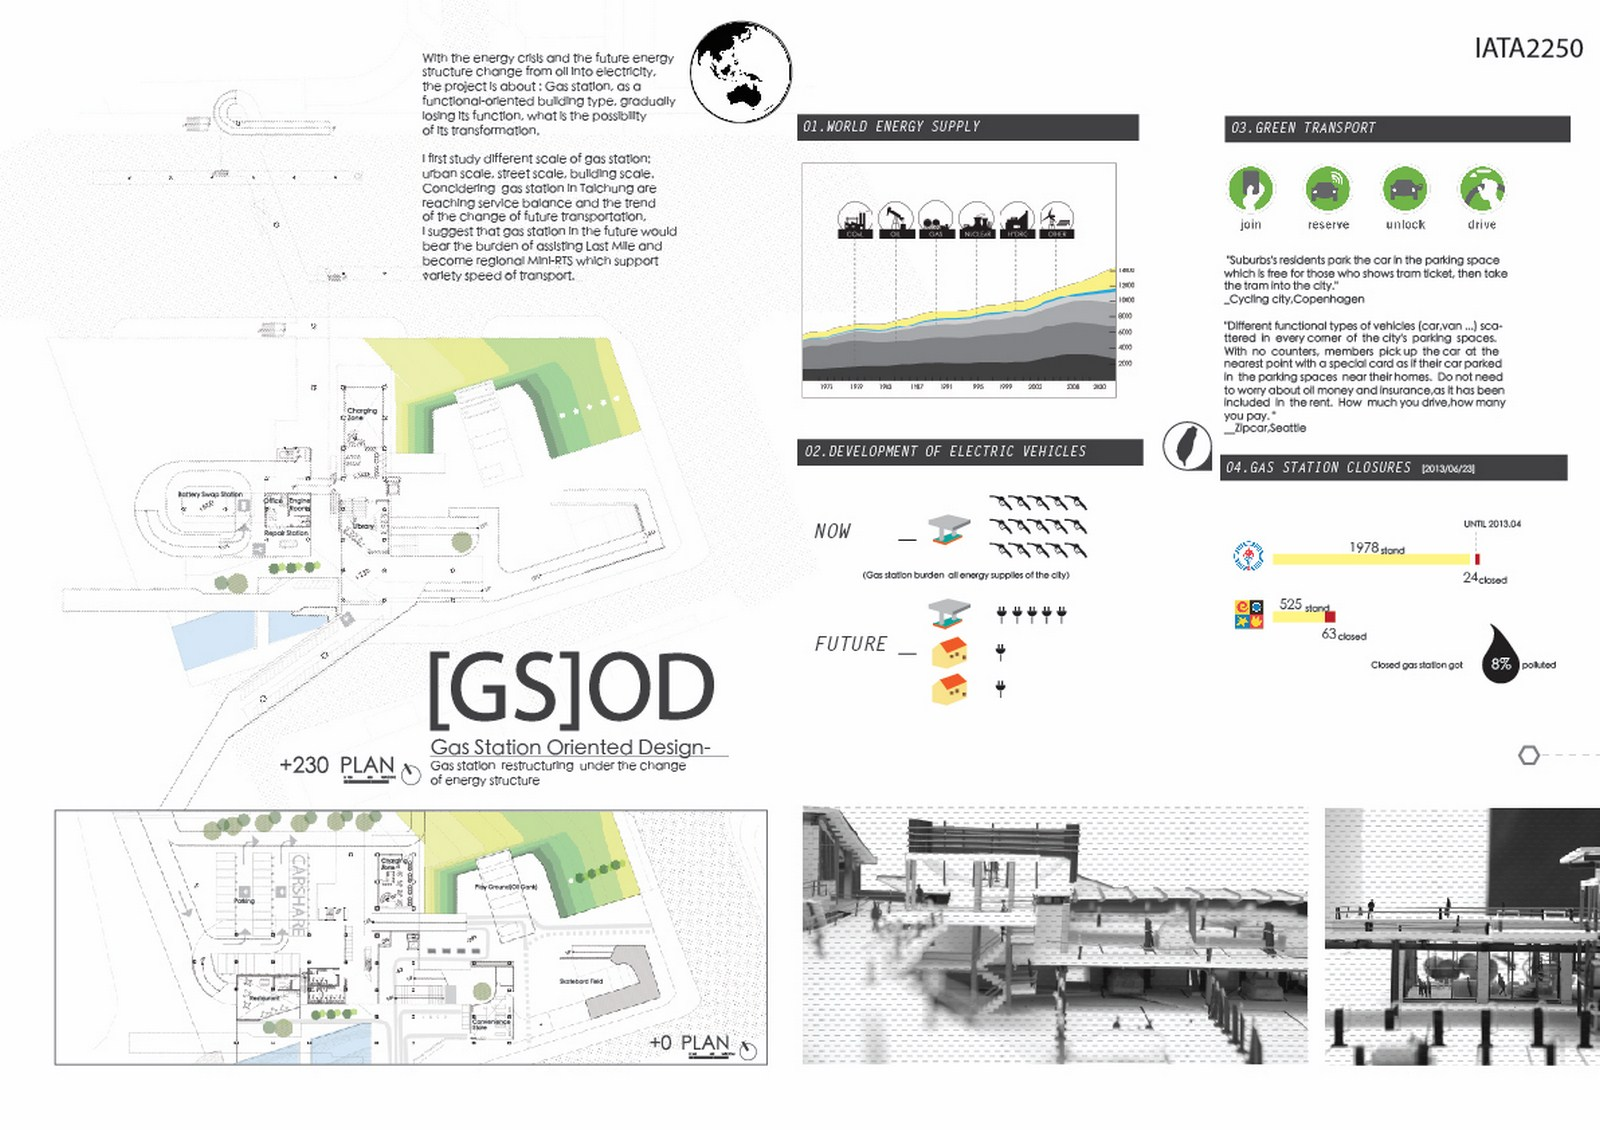 [GS]OD-Gas Station Oriented Design By Chia Hsuan Chang - Sheet1